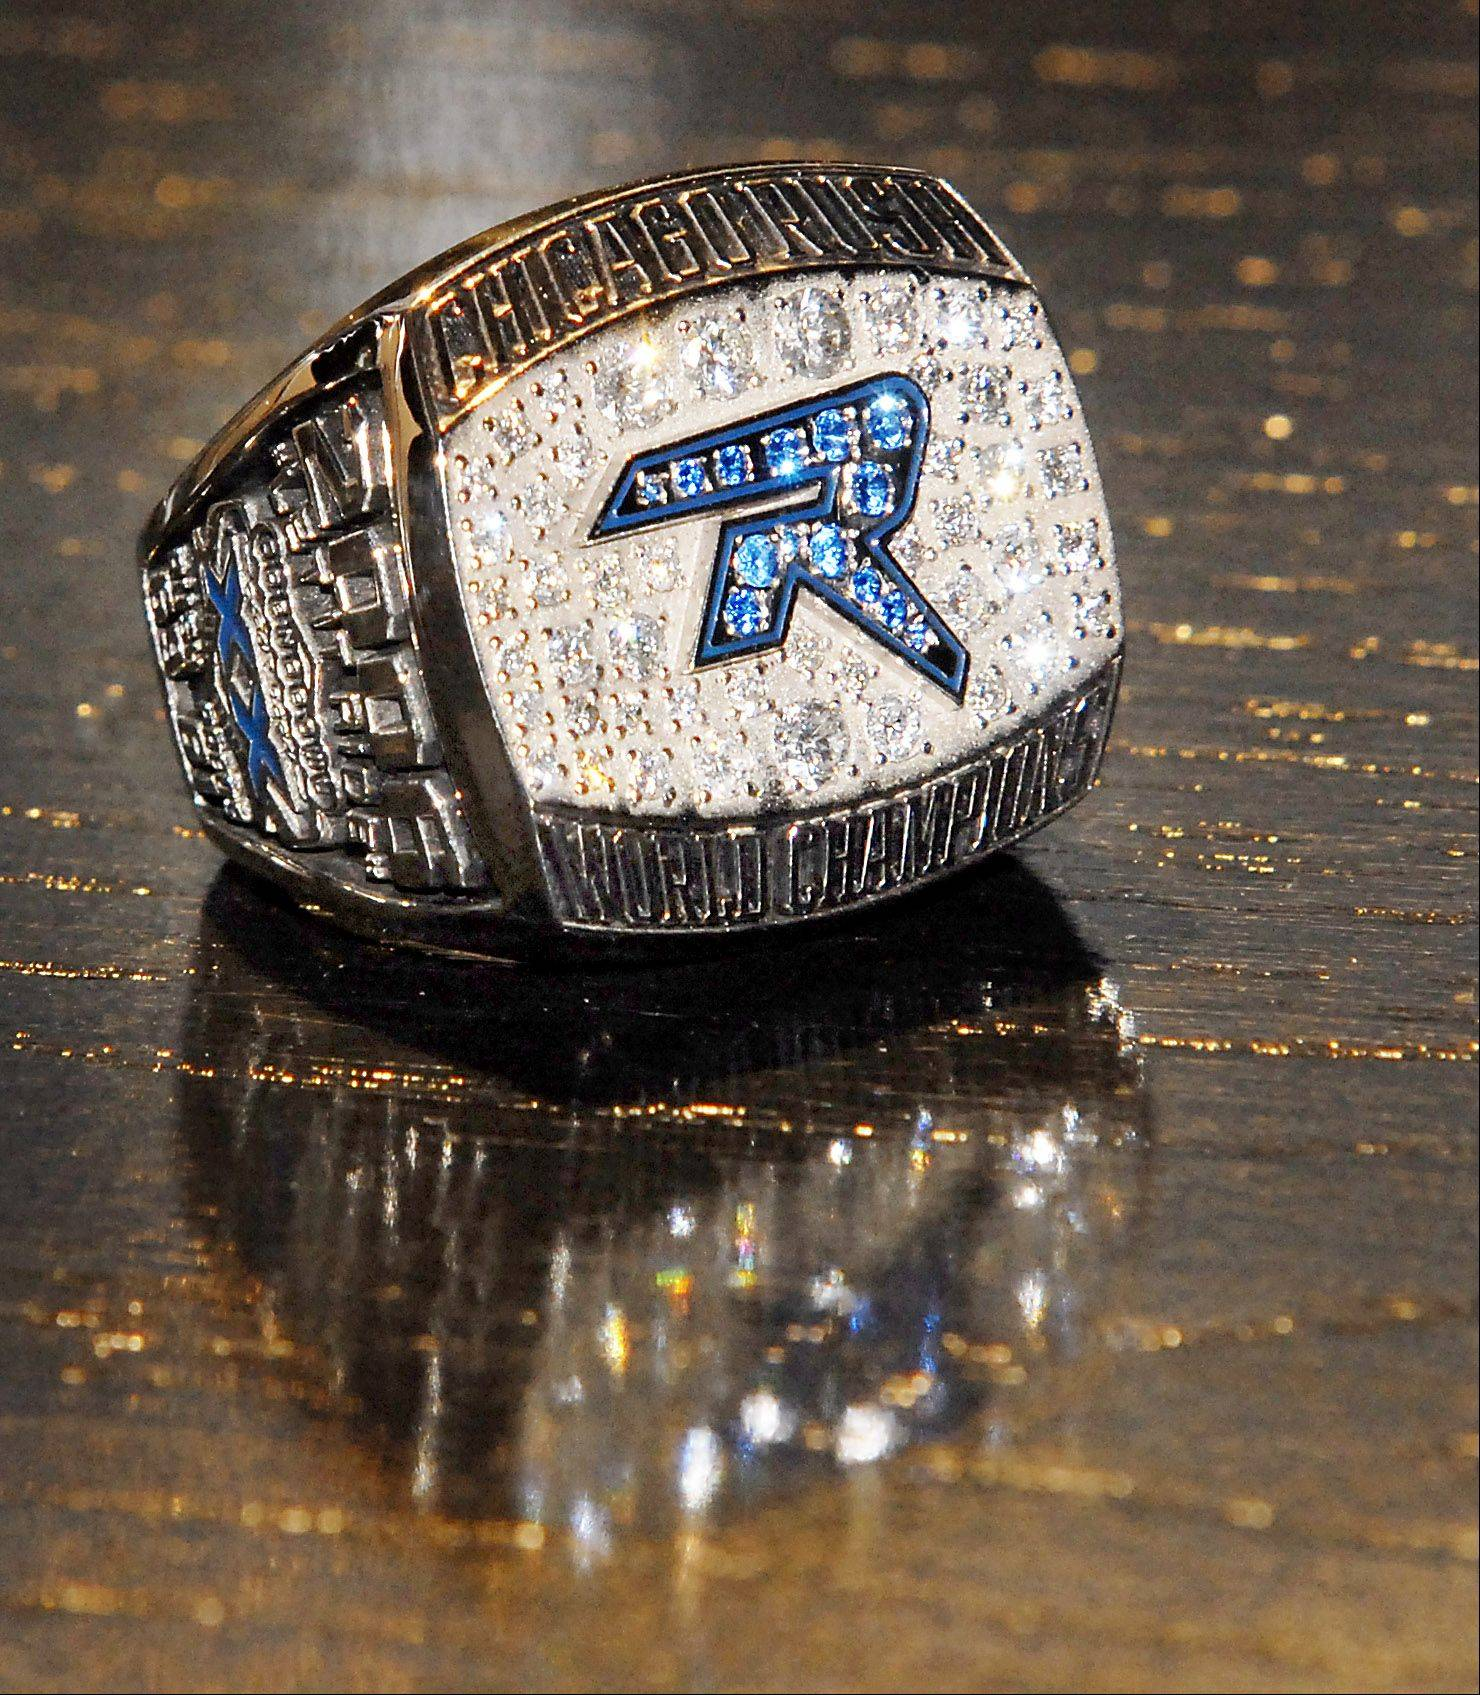 The Chicago Rush earned this ring by winning ArenaBowl XX in 2006. Now the team is one win away from earning a spot in ArenaBowl XXIV. They must beat the Arizona Rattlers on Saturday to advance.